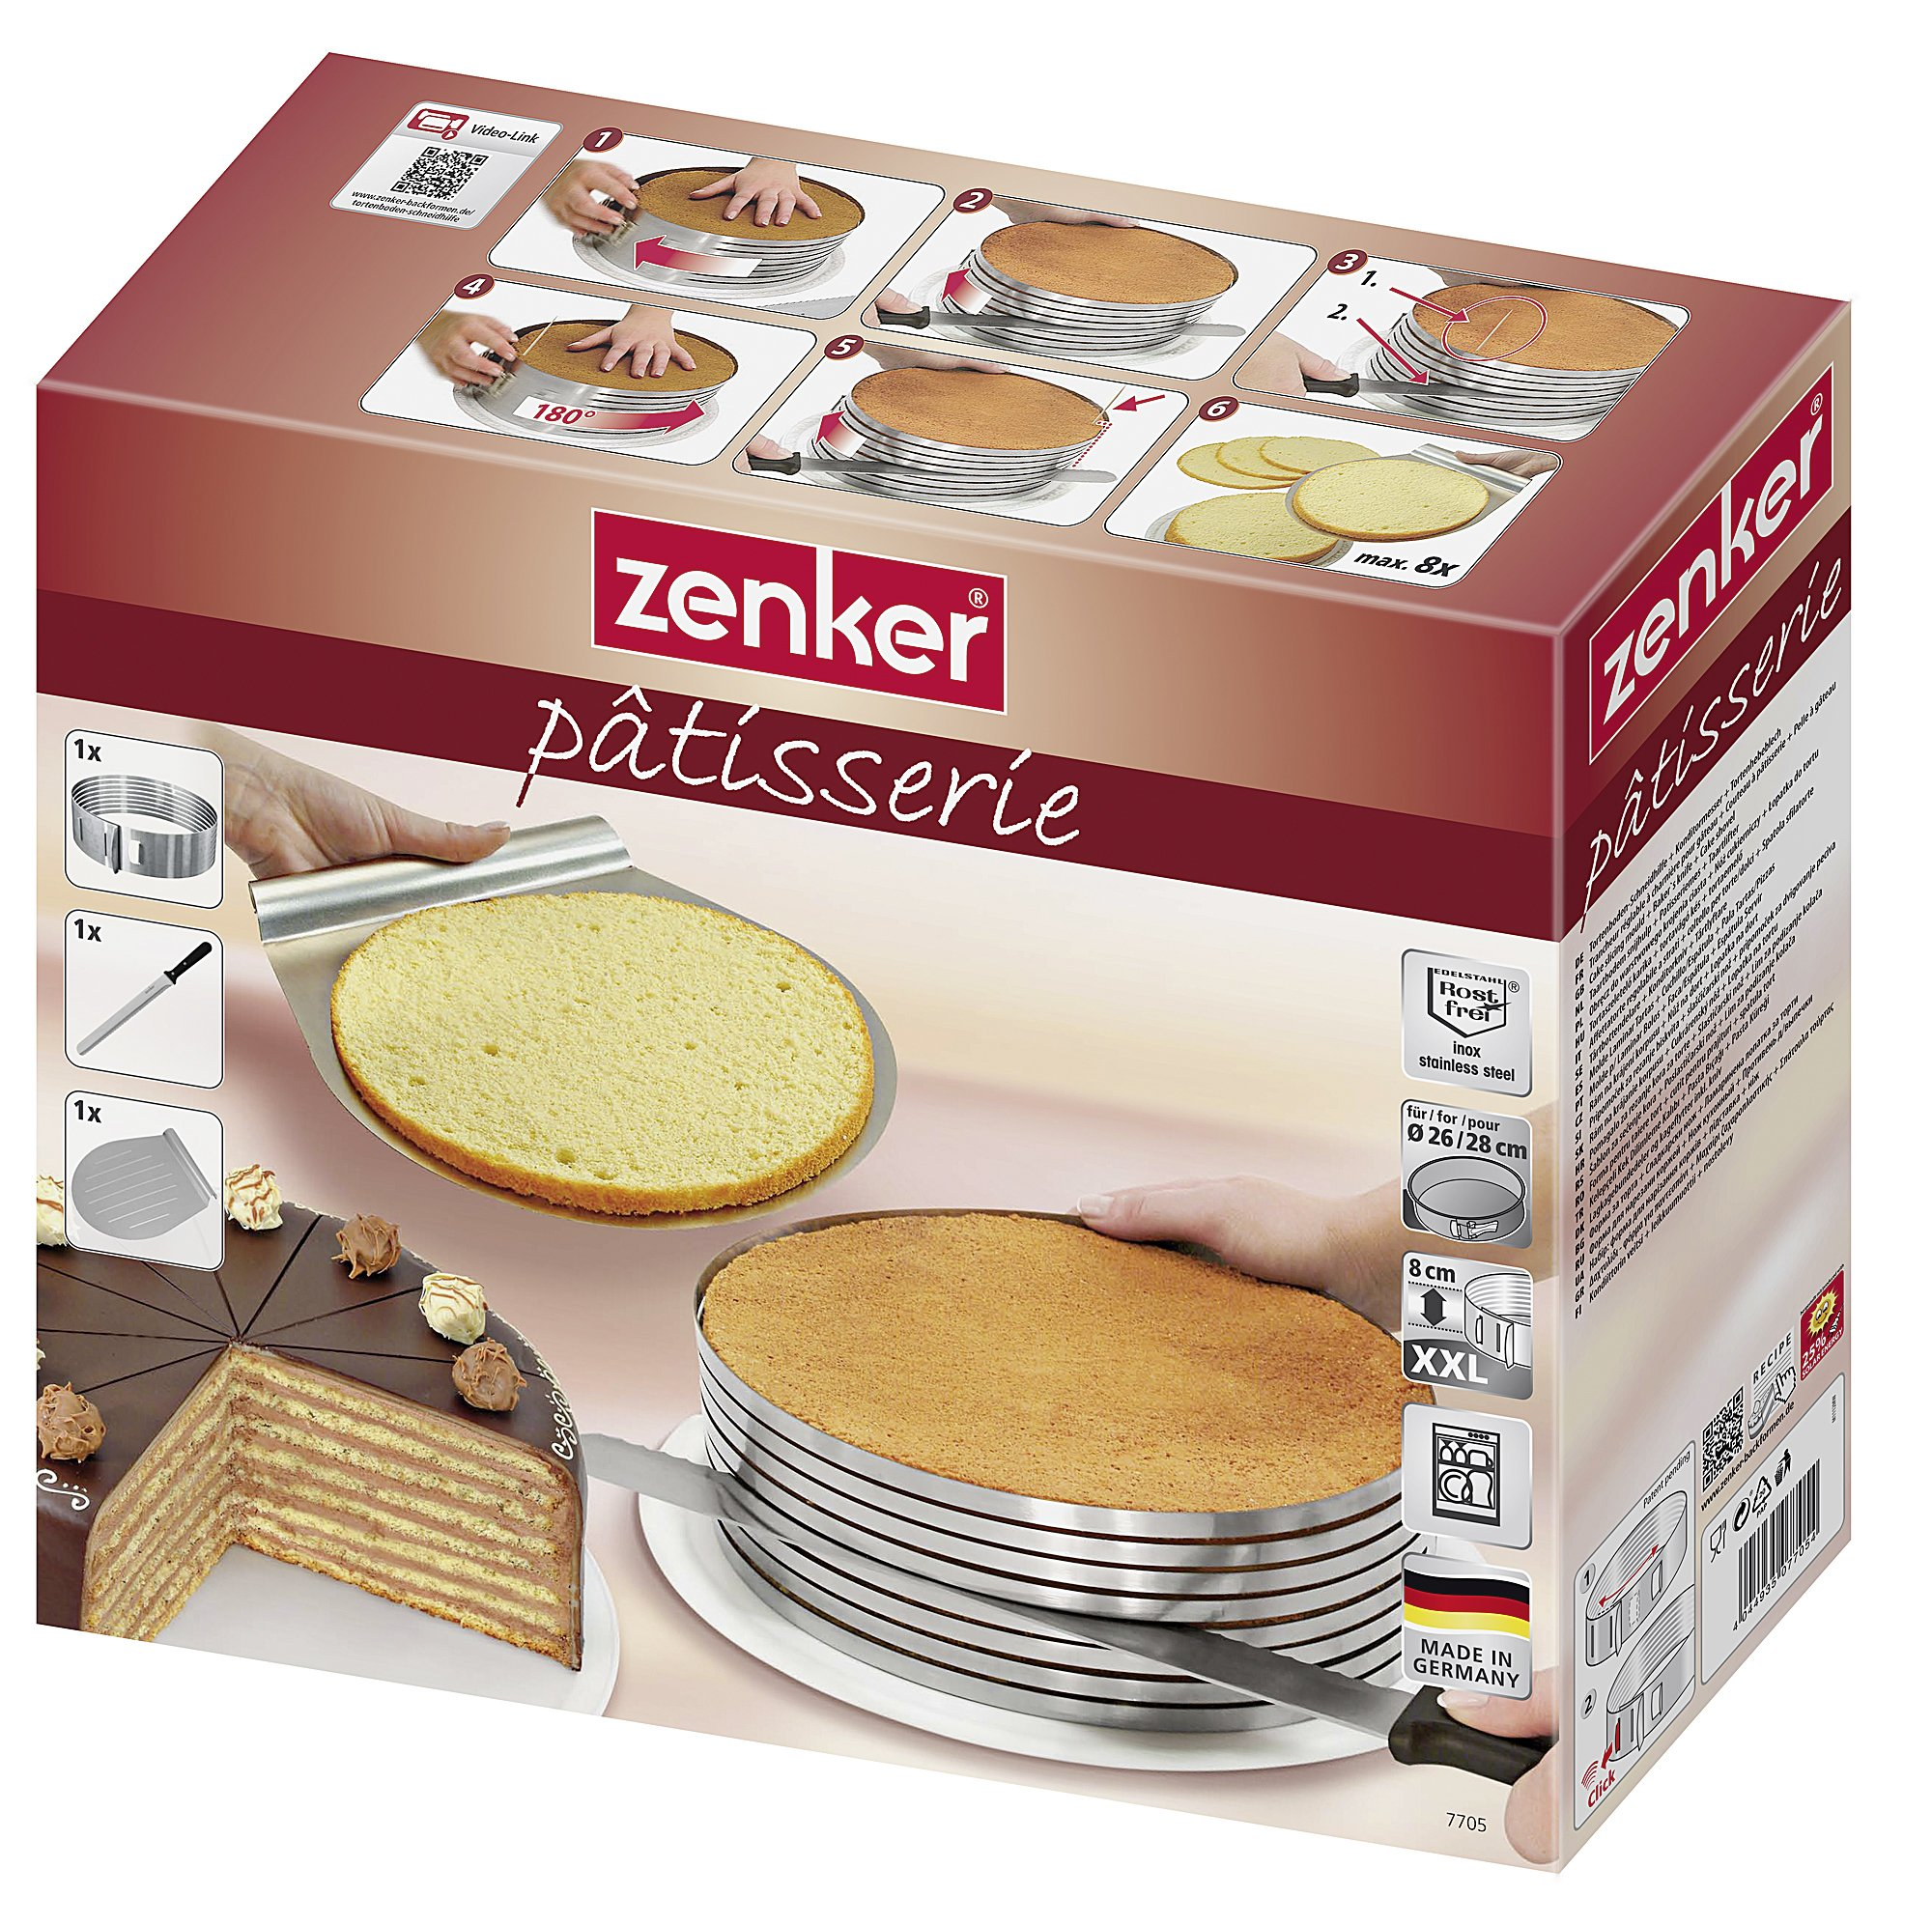 Zenker Stainless Steel Layer Cake Slicing Kit with 12'' Serrated Knife, 3-Piece by Zenker (Image #6)